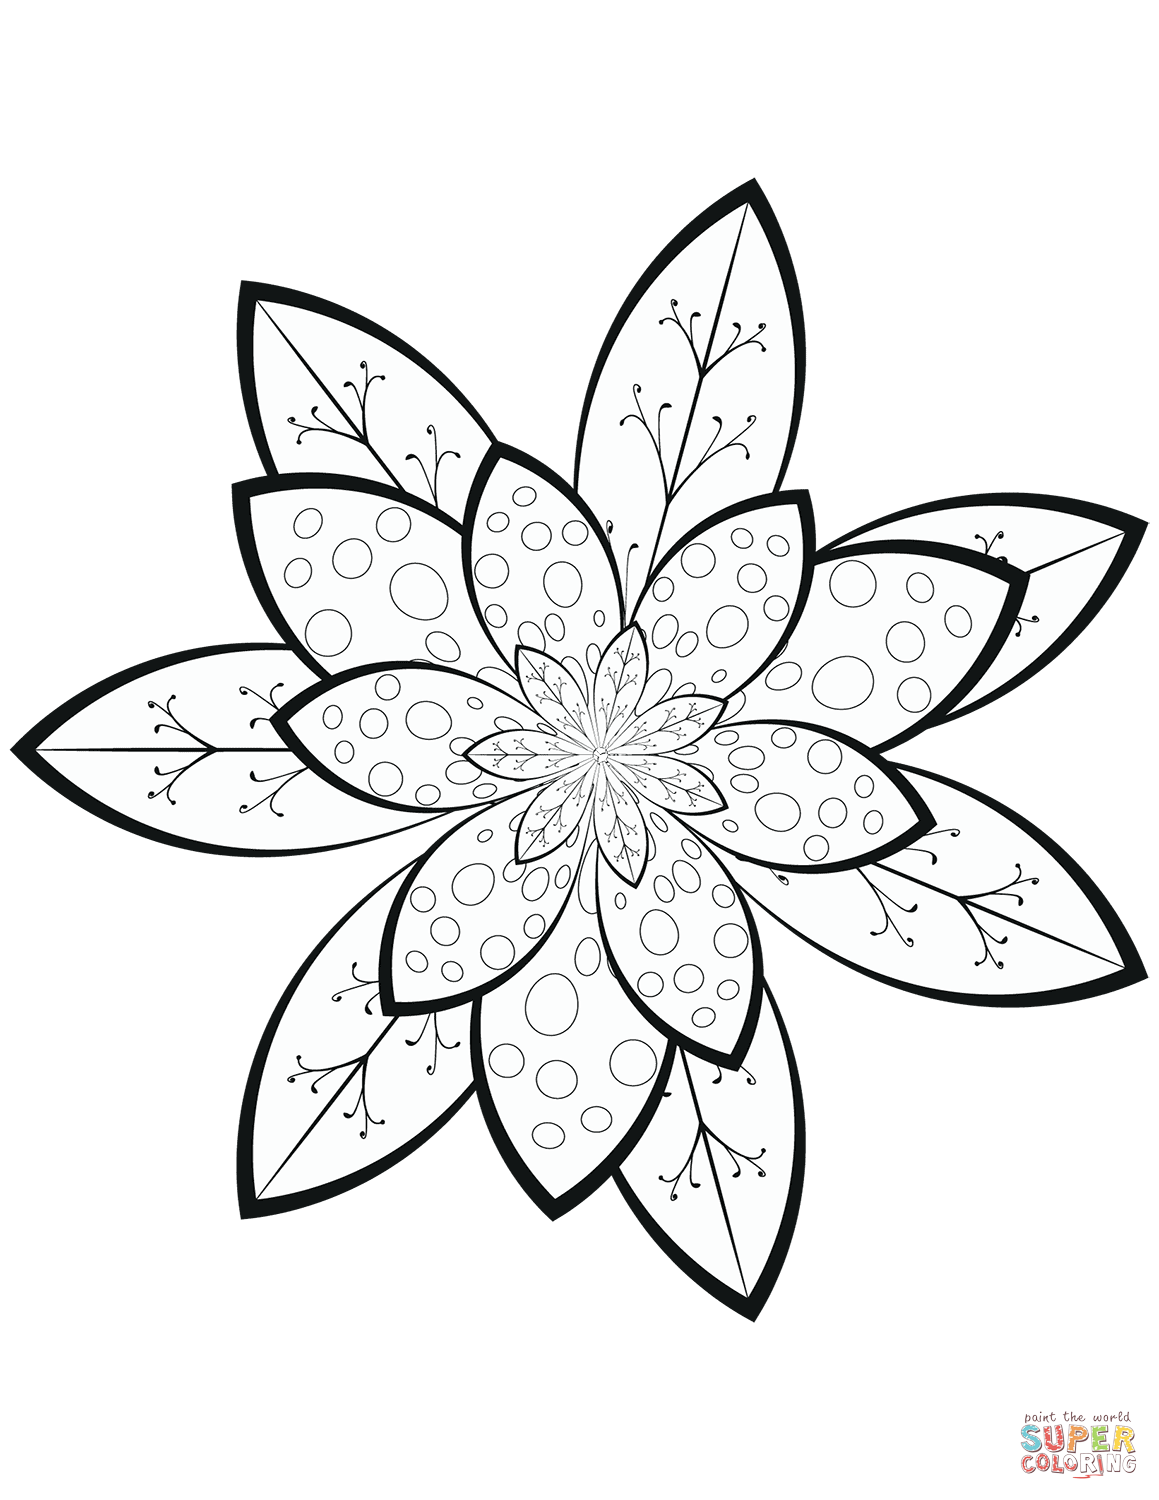 Worksheet Flower Pattern Color